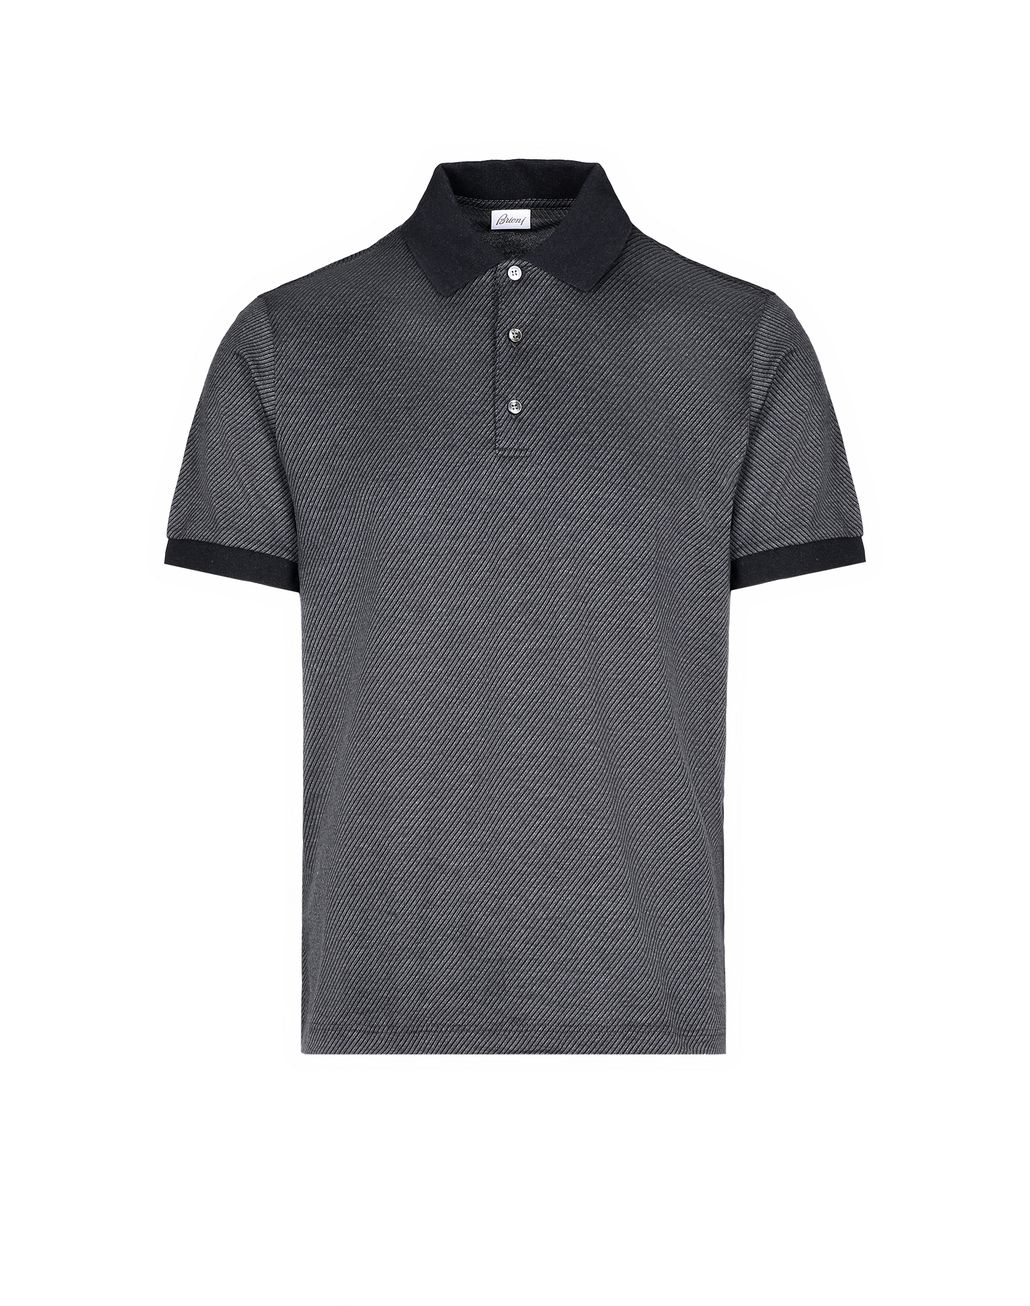 BRIONI Antrachite Jaquard Polo Shirt T-Shirts & Polos Man f